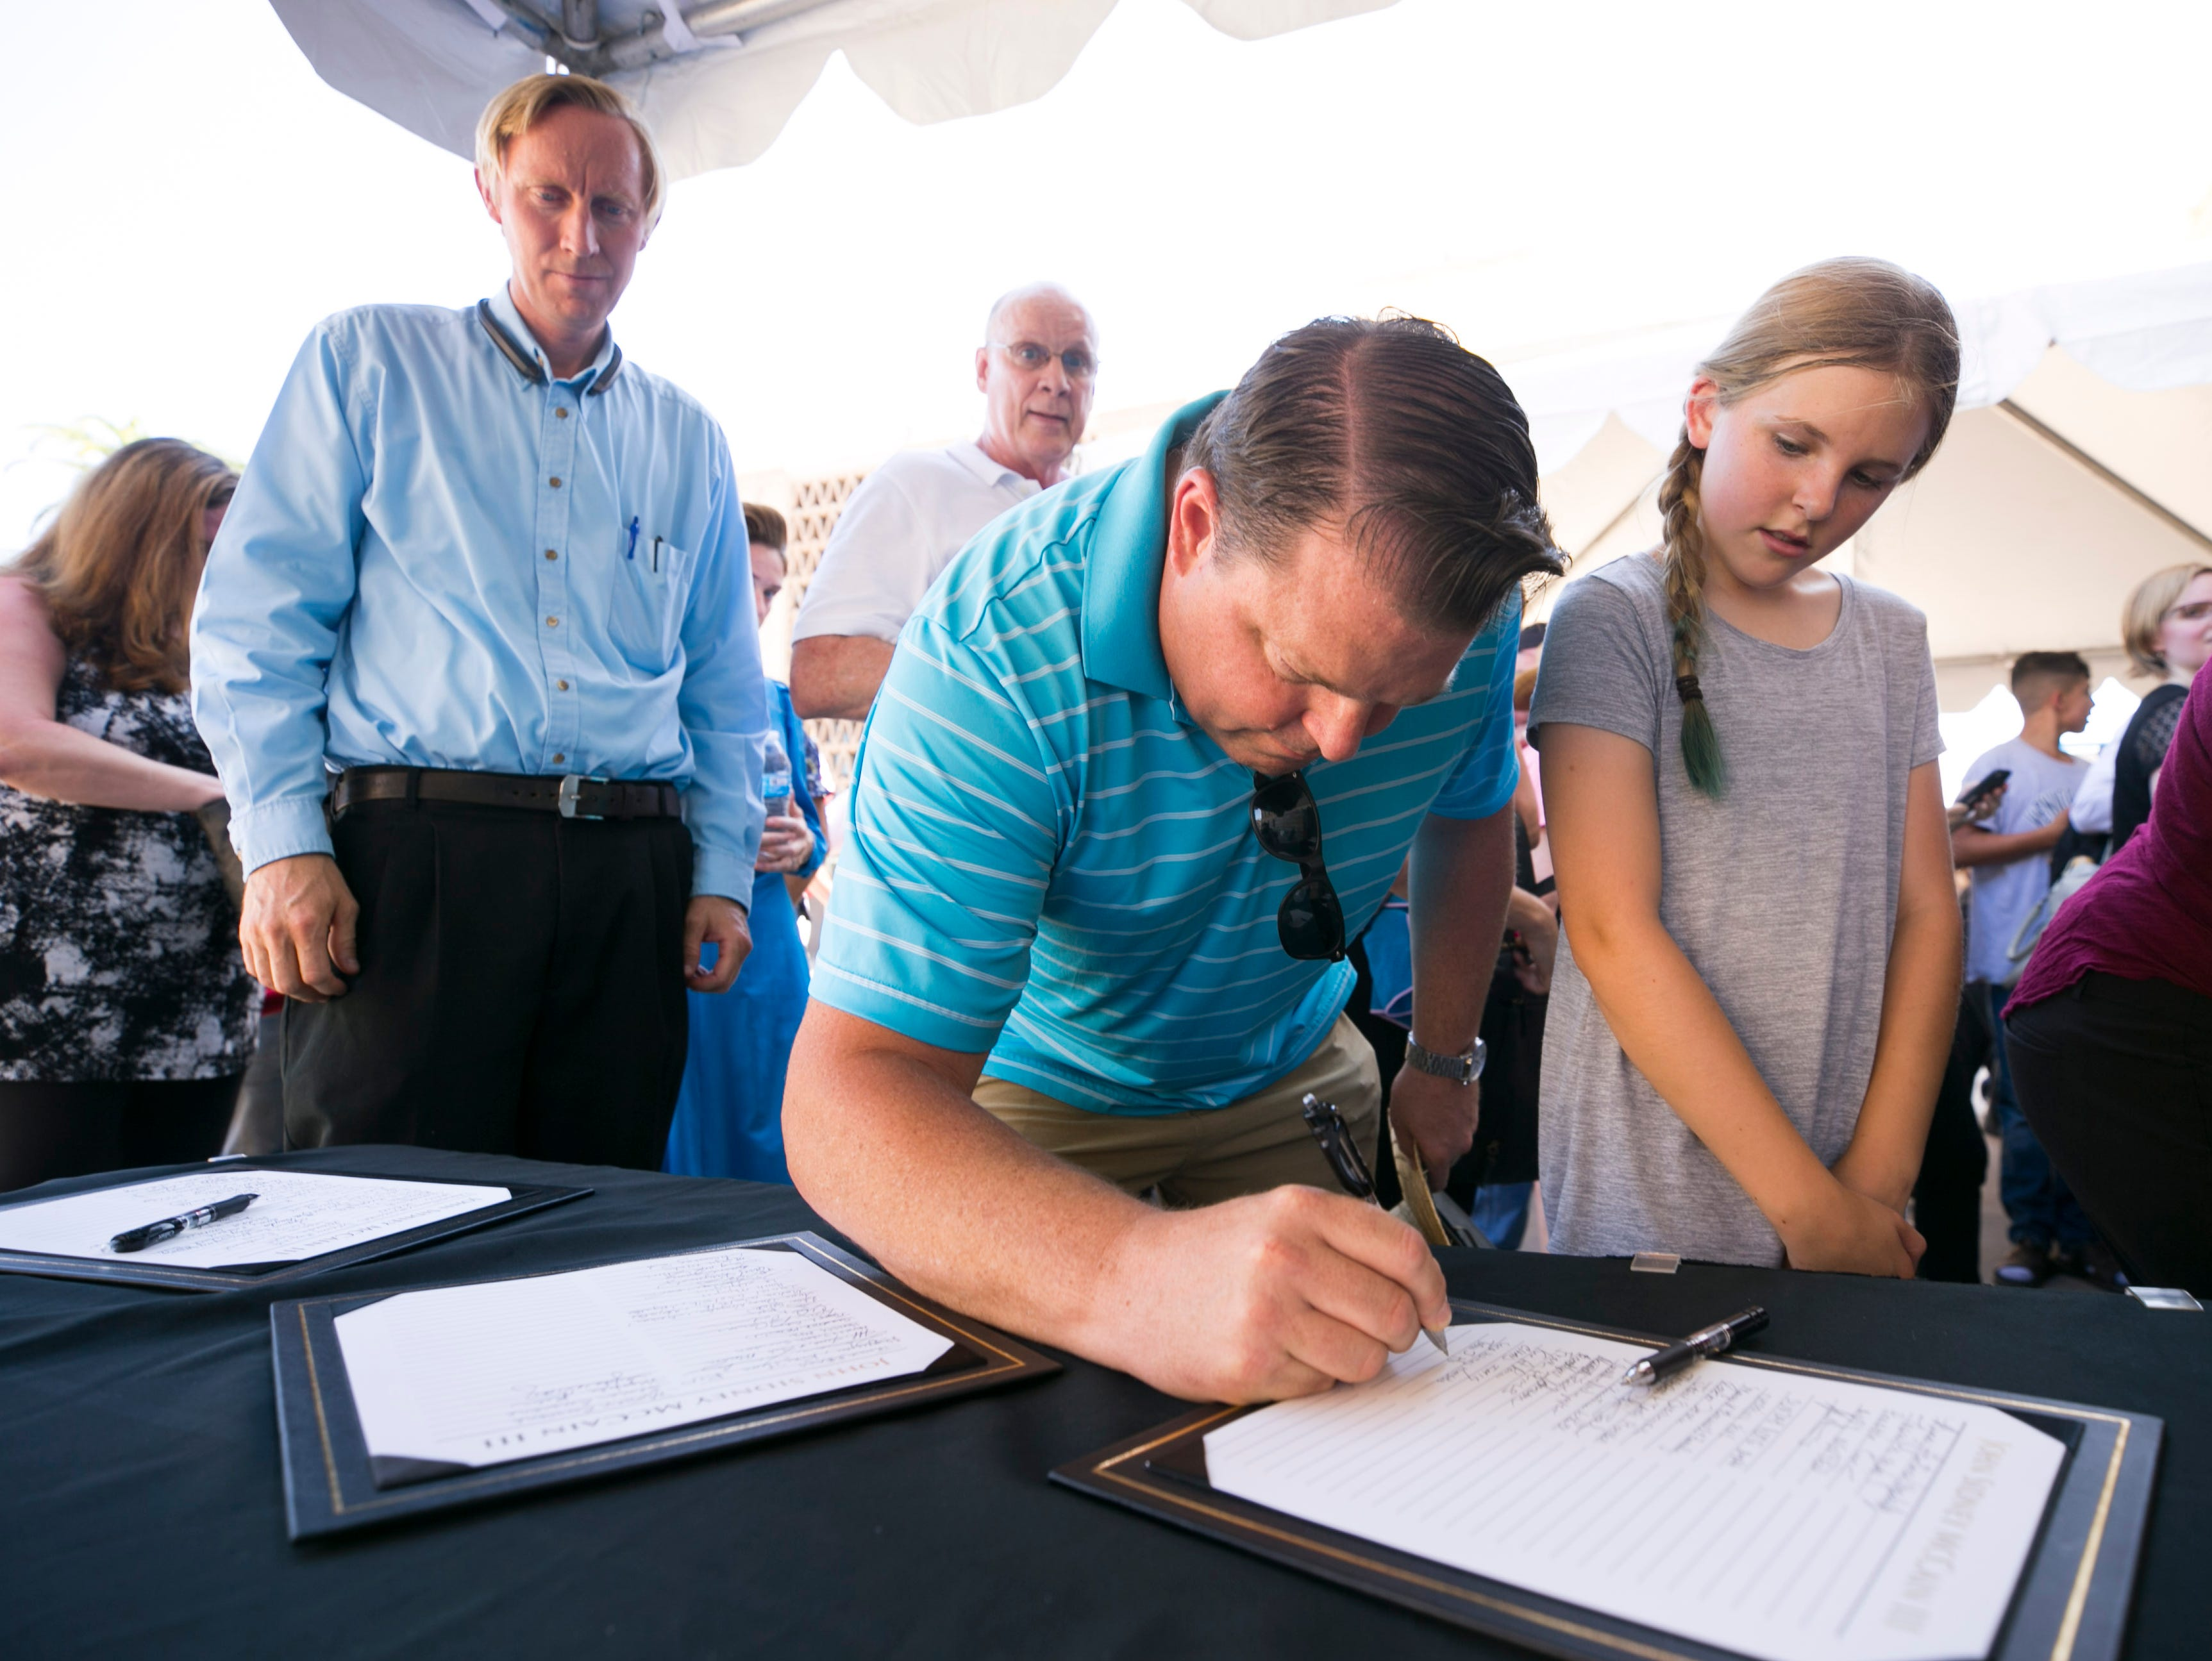 Tobin Holmes of Riverside, California, and his daughter, Cora Holmes, sign a guest book before entering the Arizona state Capitol to pay their respects to Sen. John McCain in Phoenix on Aug. 29, 2018.